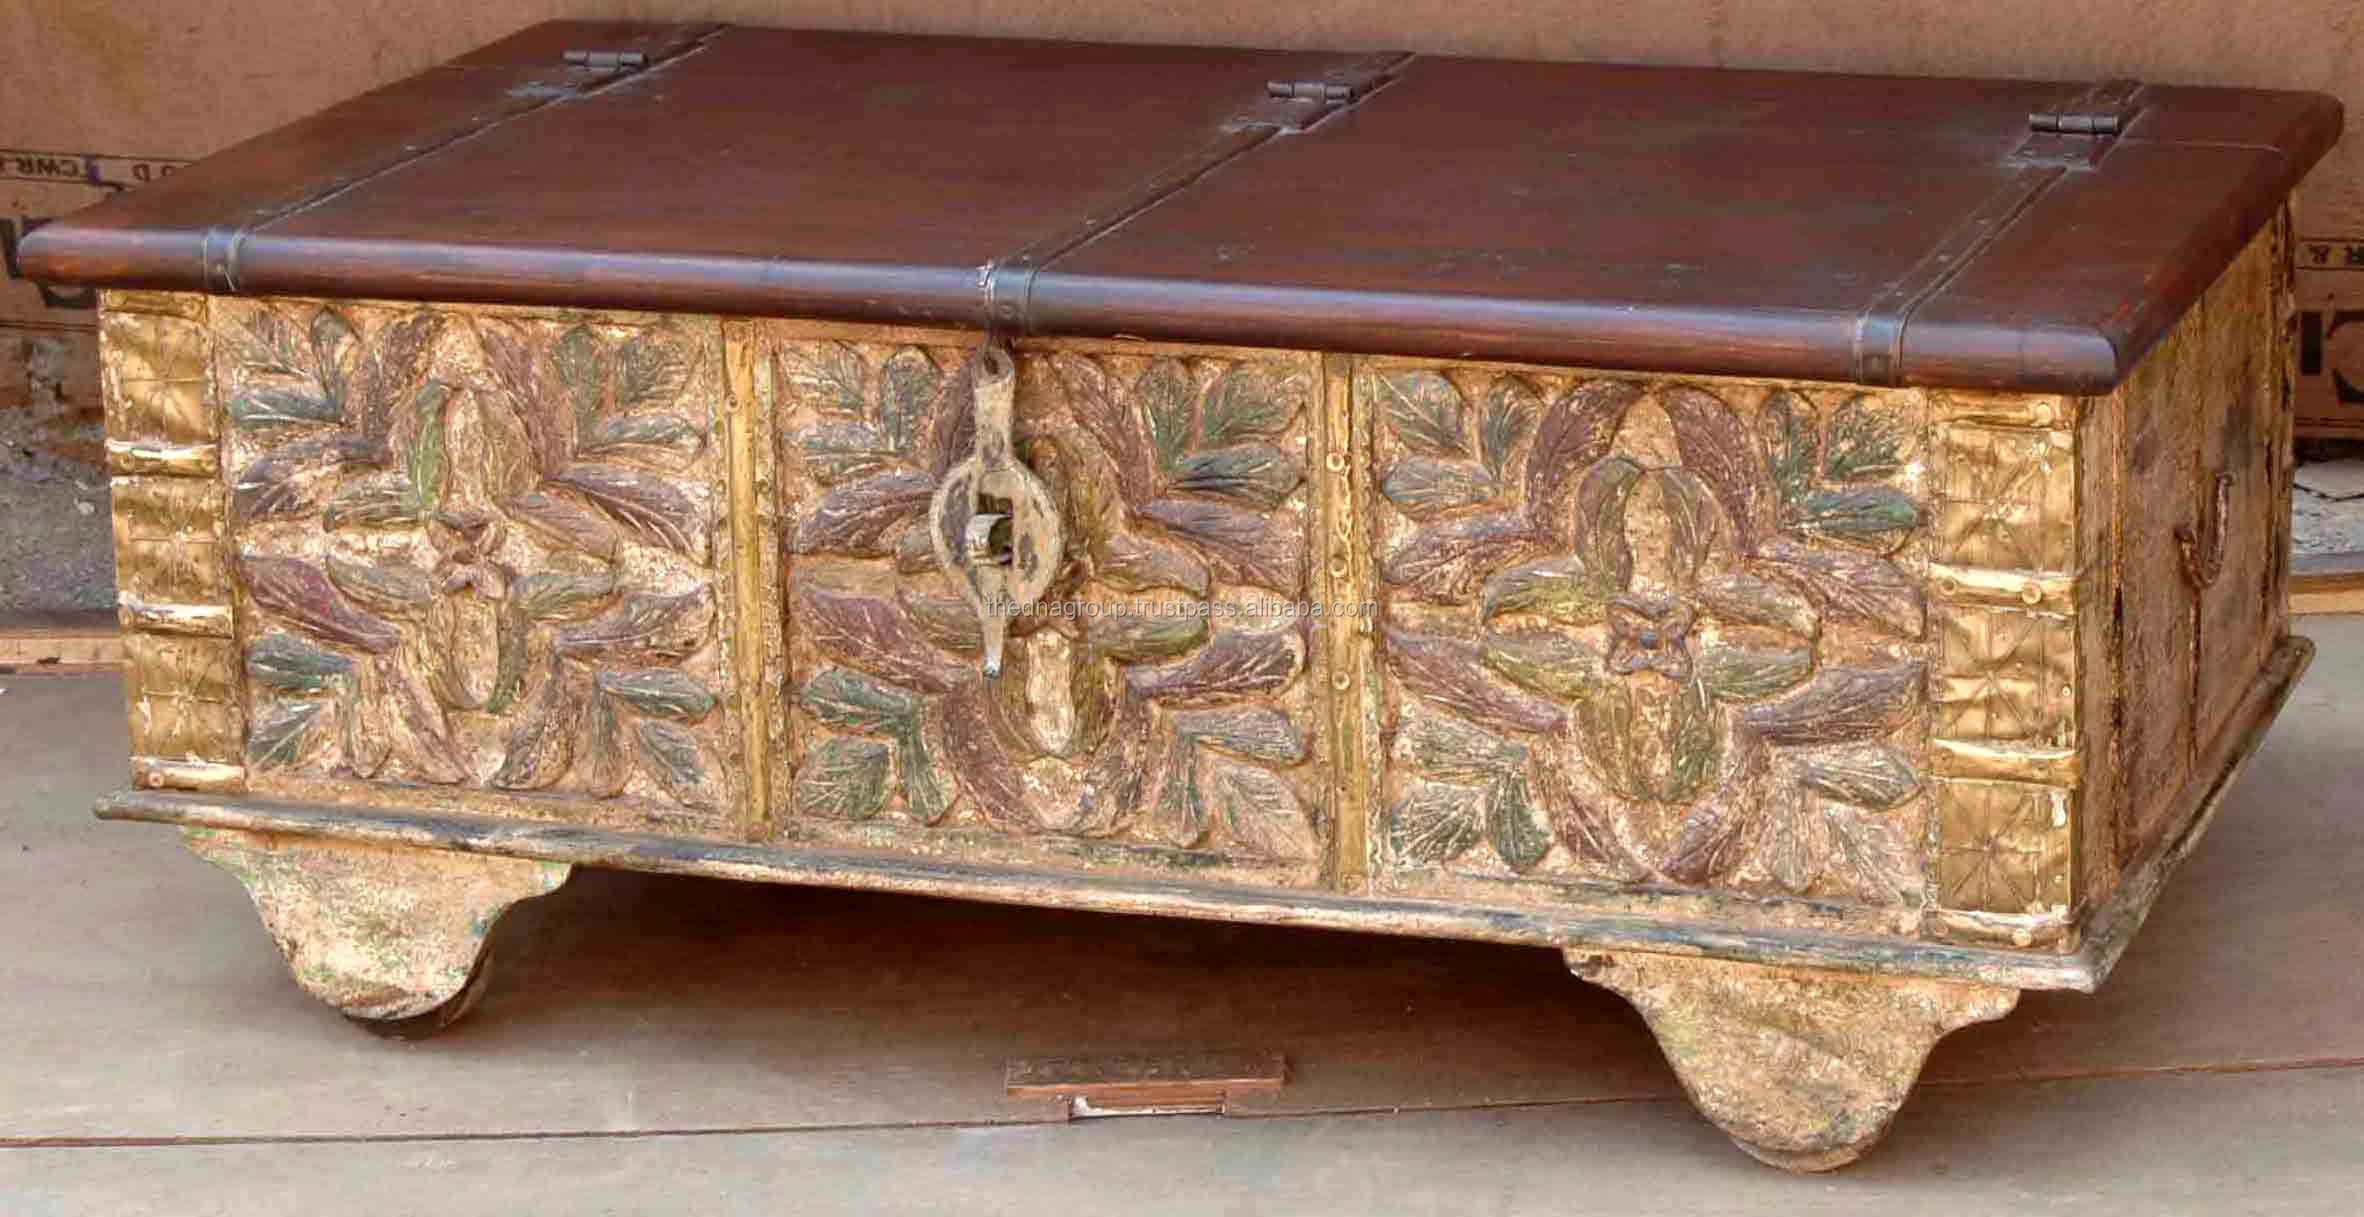 Antique Handmade Wooden Carved Trunks